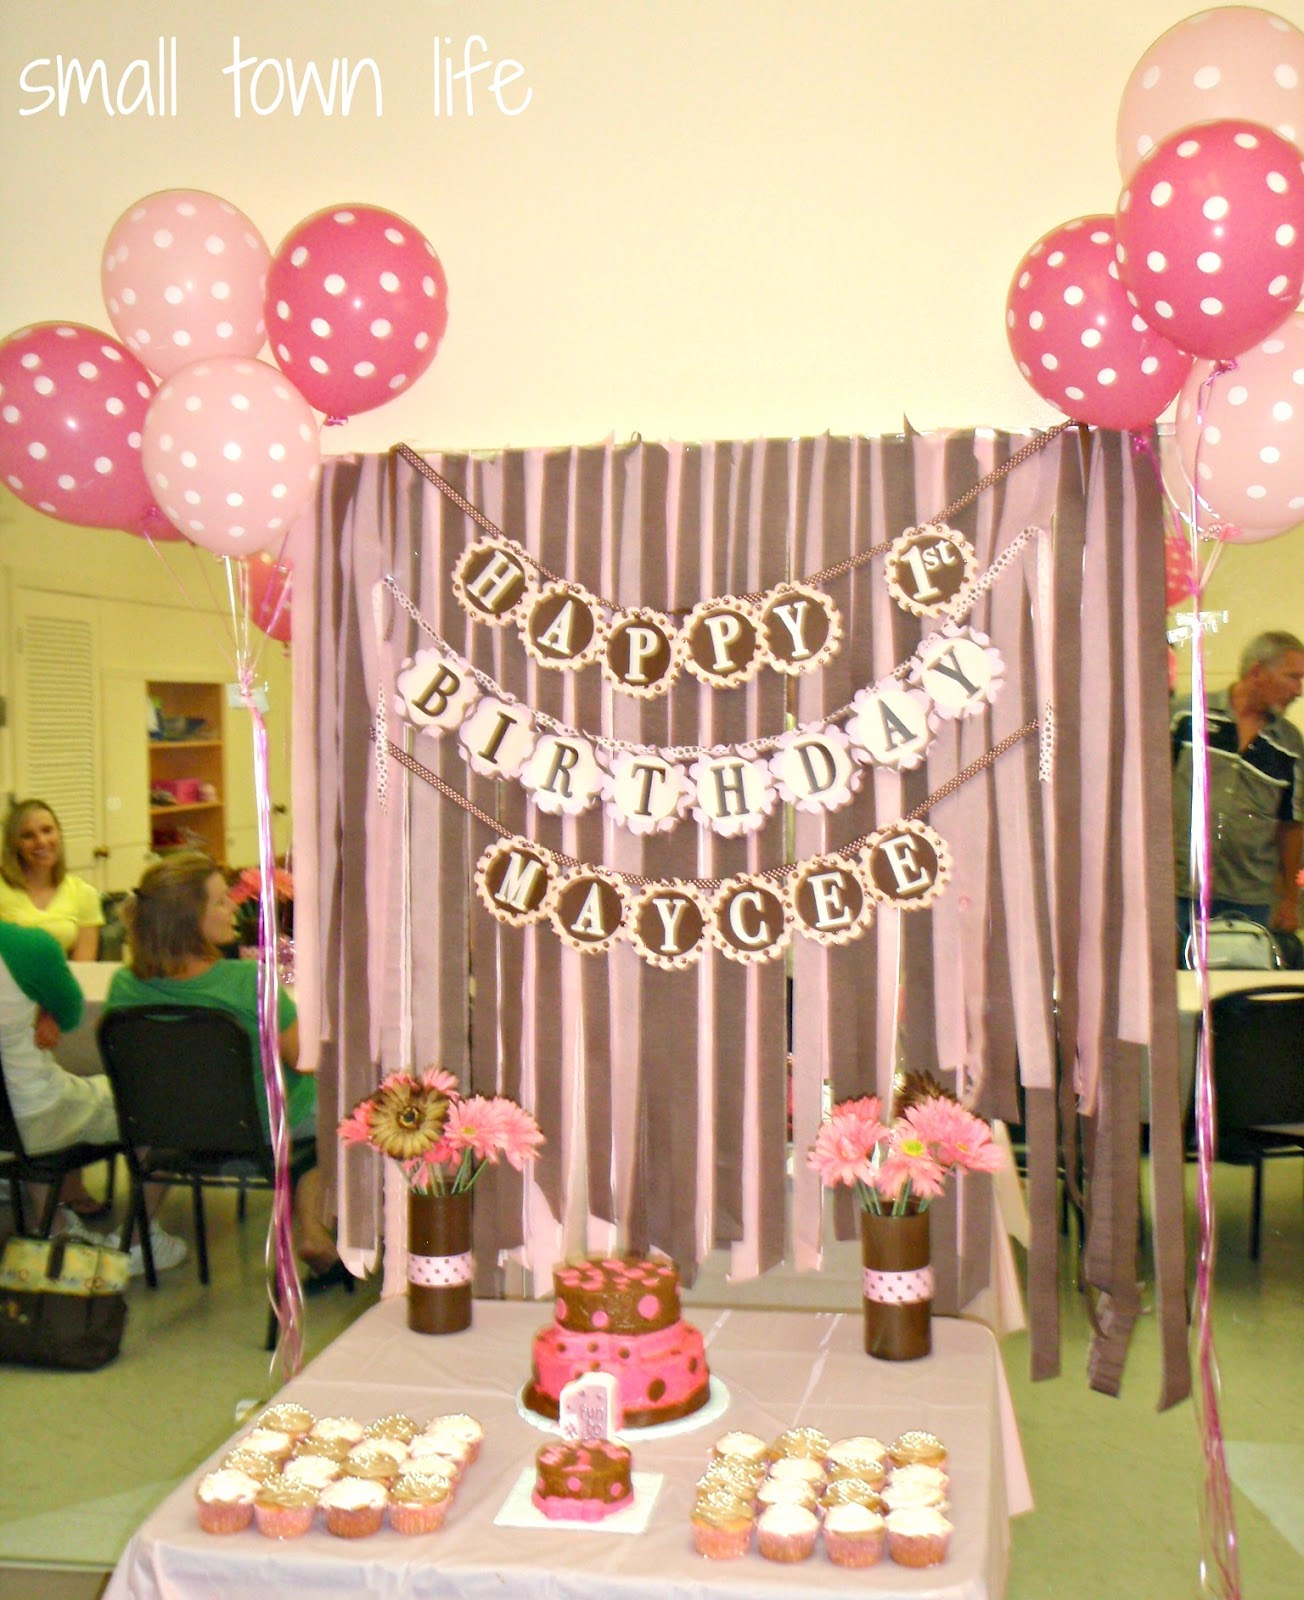 Birthday cake table backdrop ideas for Party backdrop ideas